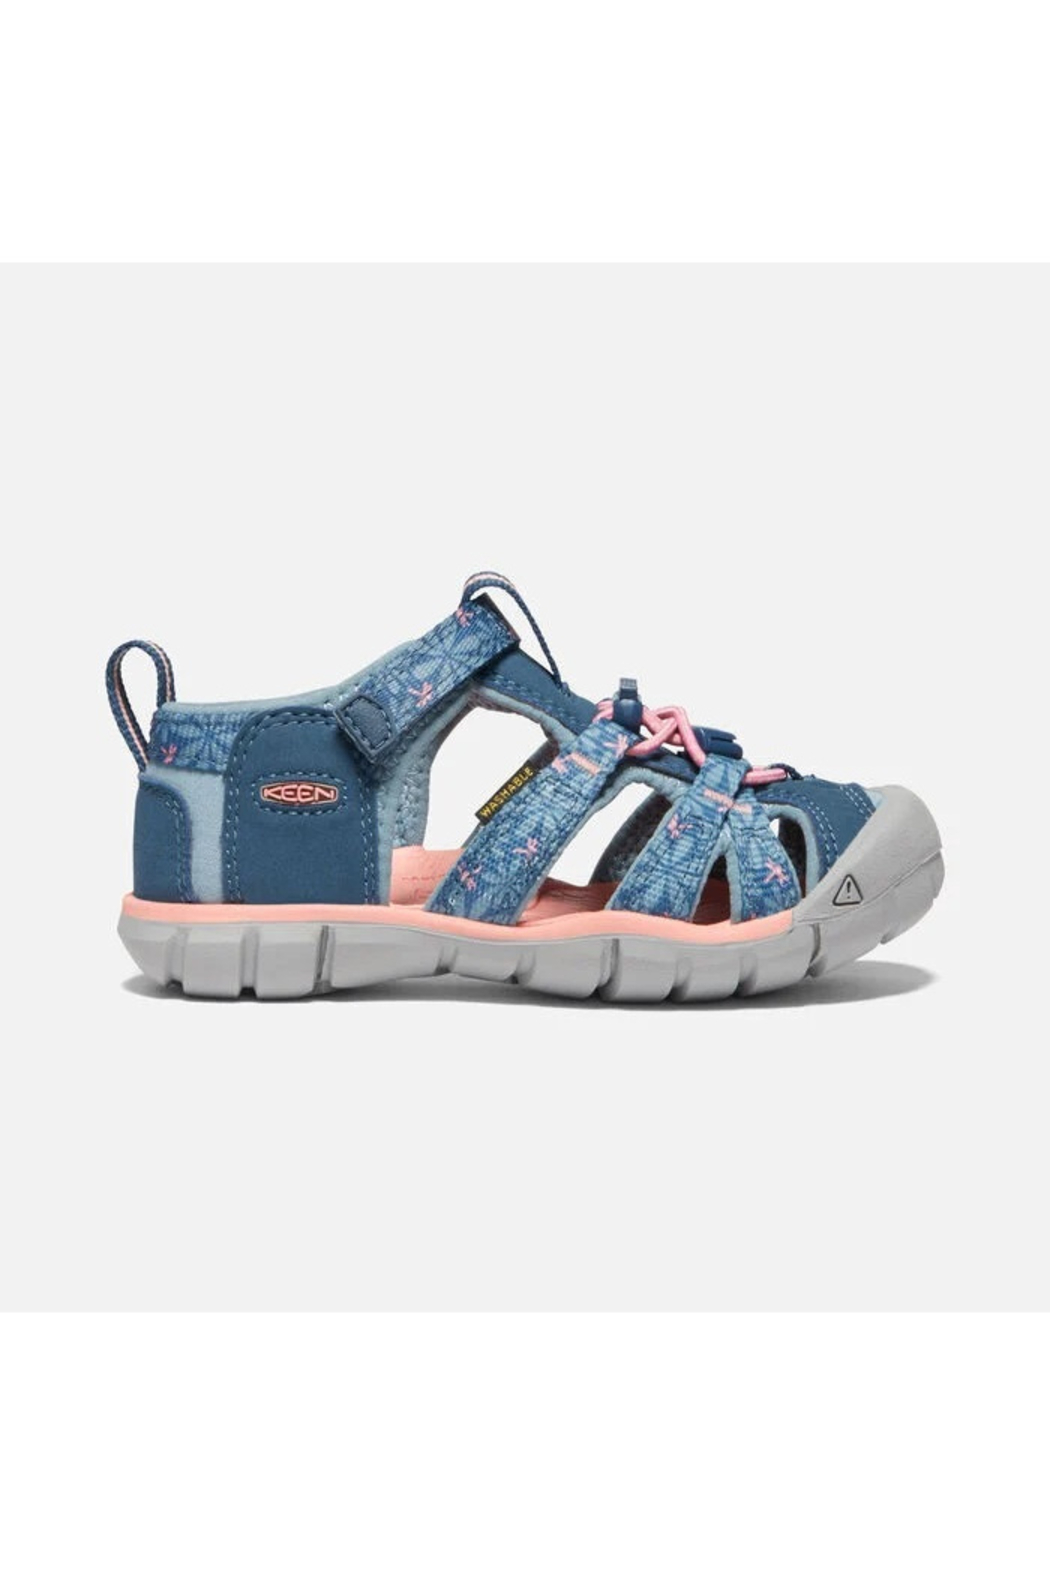 Keen Big Kids Seacamp II CNX in Real Teal/Stone Blue - Front Full Image